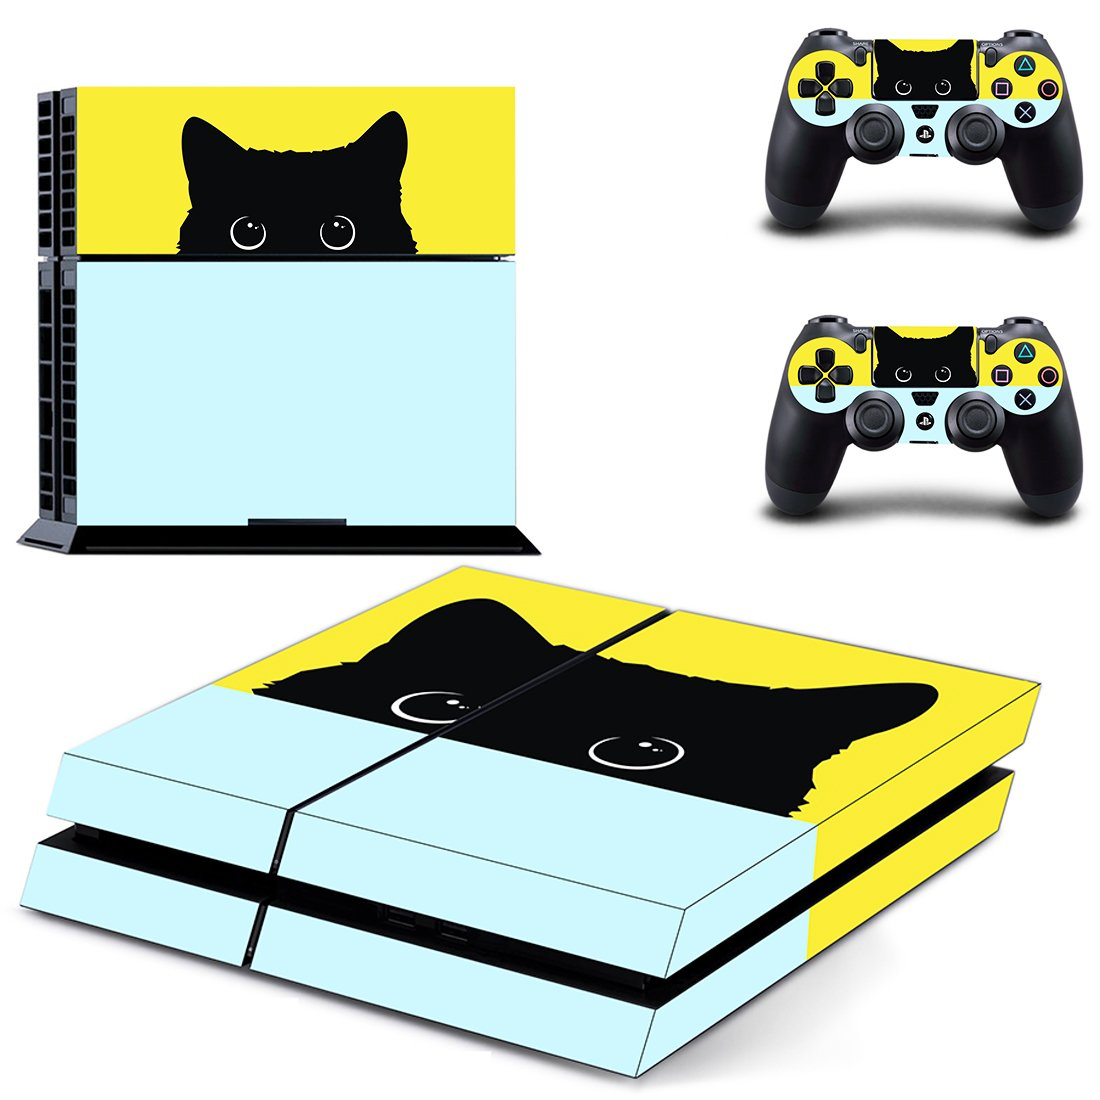 Black Cat skin decal for PS4 PlayStation 4 console and 2 controllers